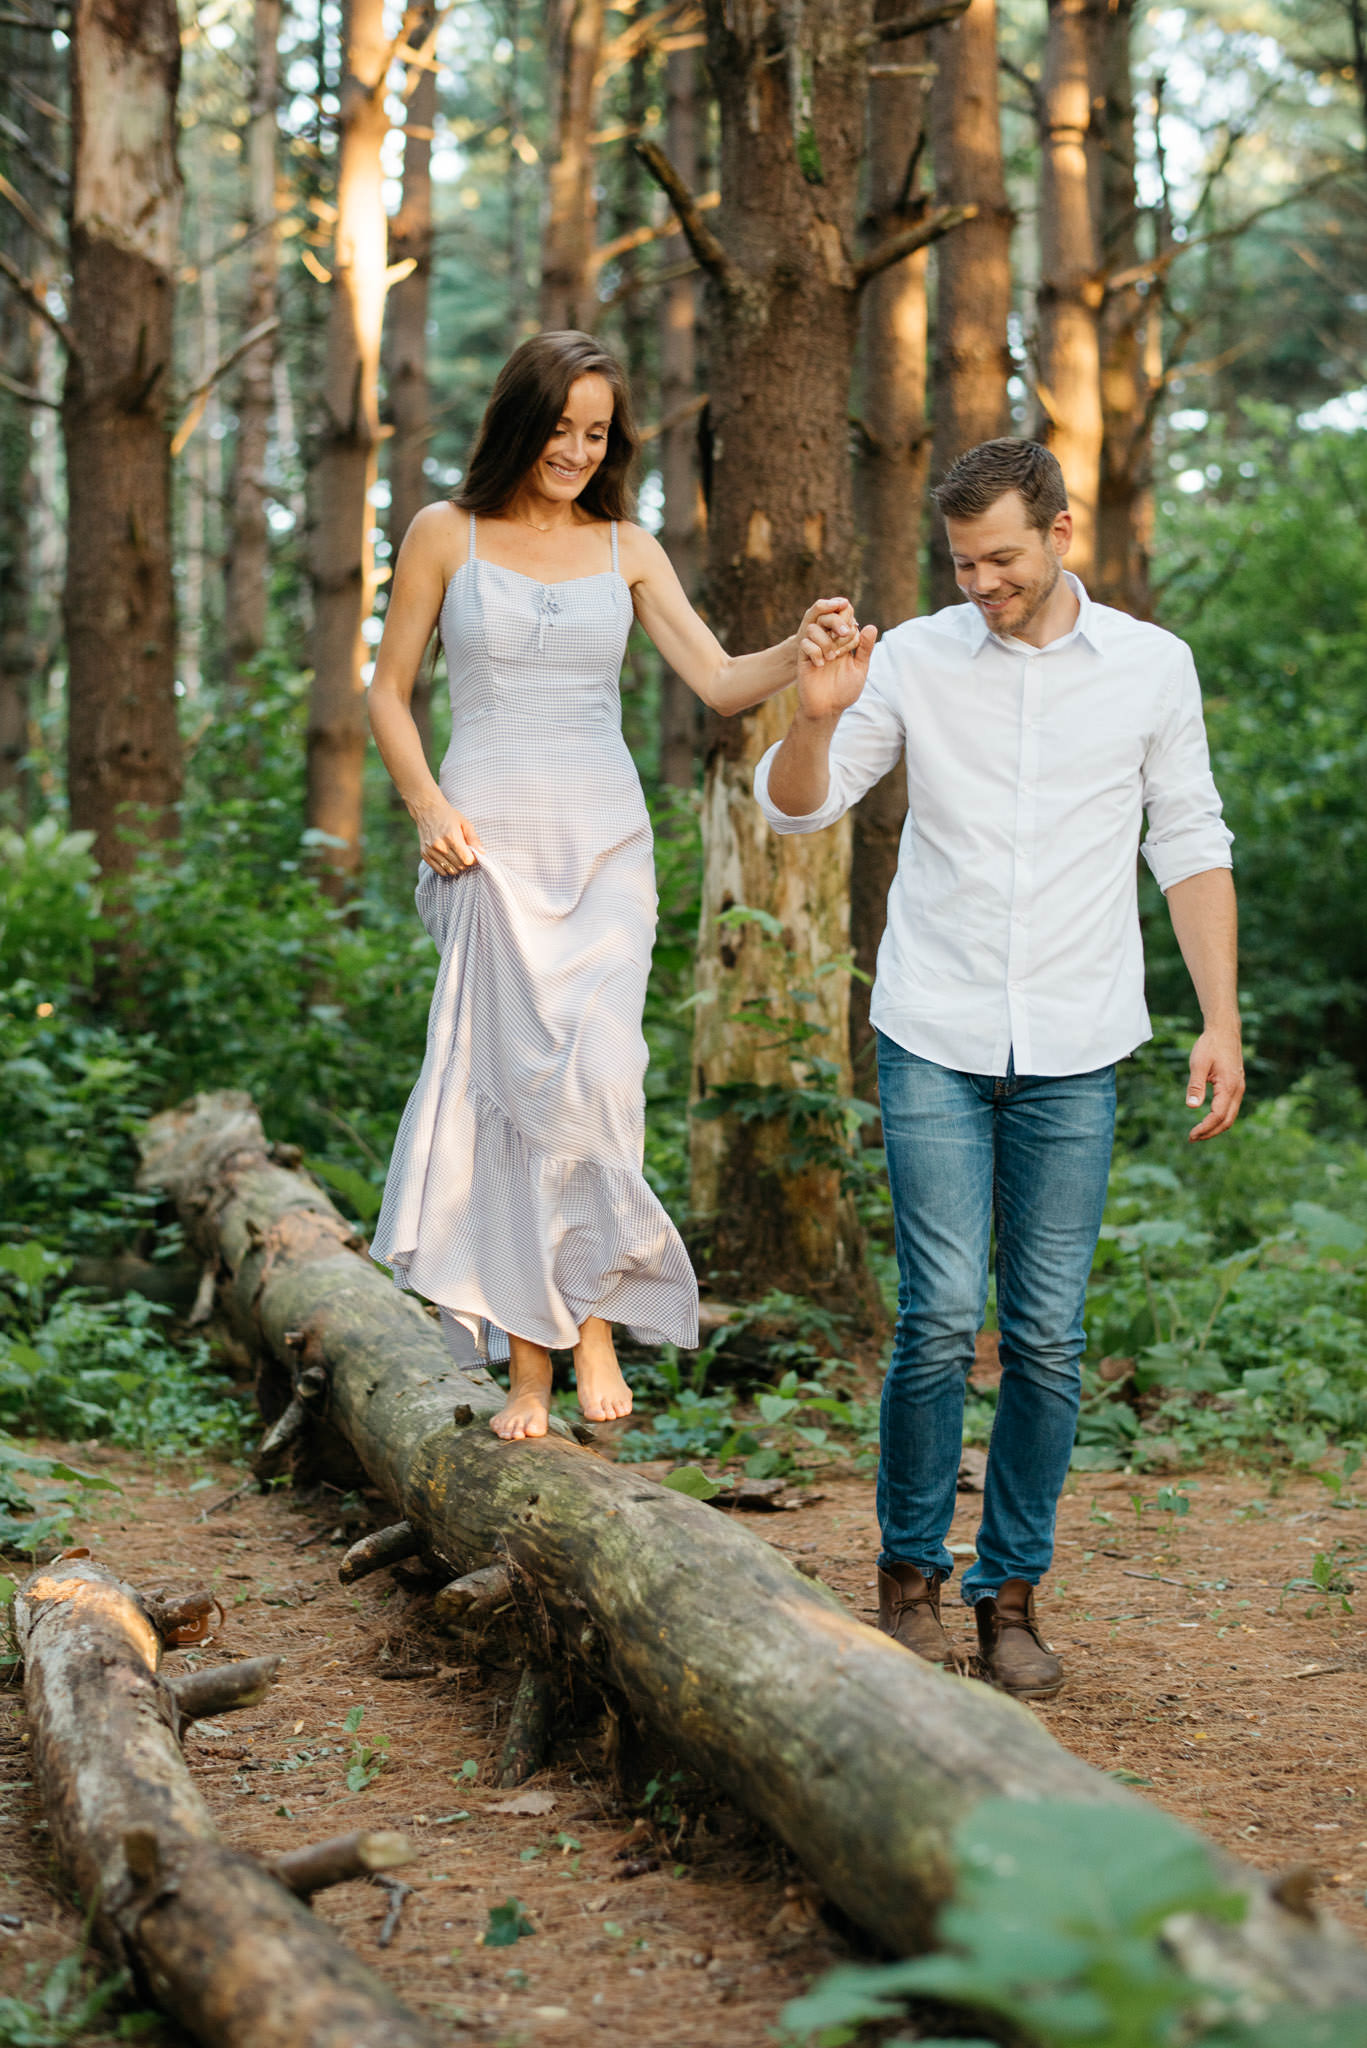 Rock-Cut-State-Park-Engagement-Session-35.jpg